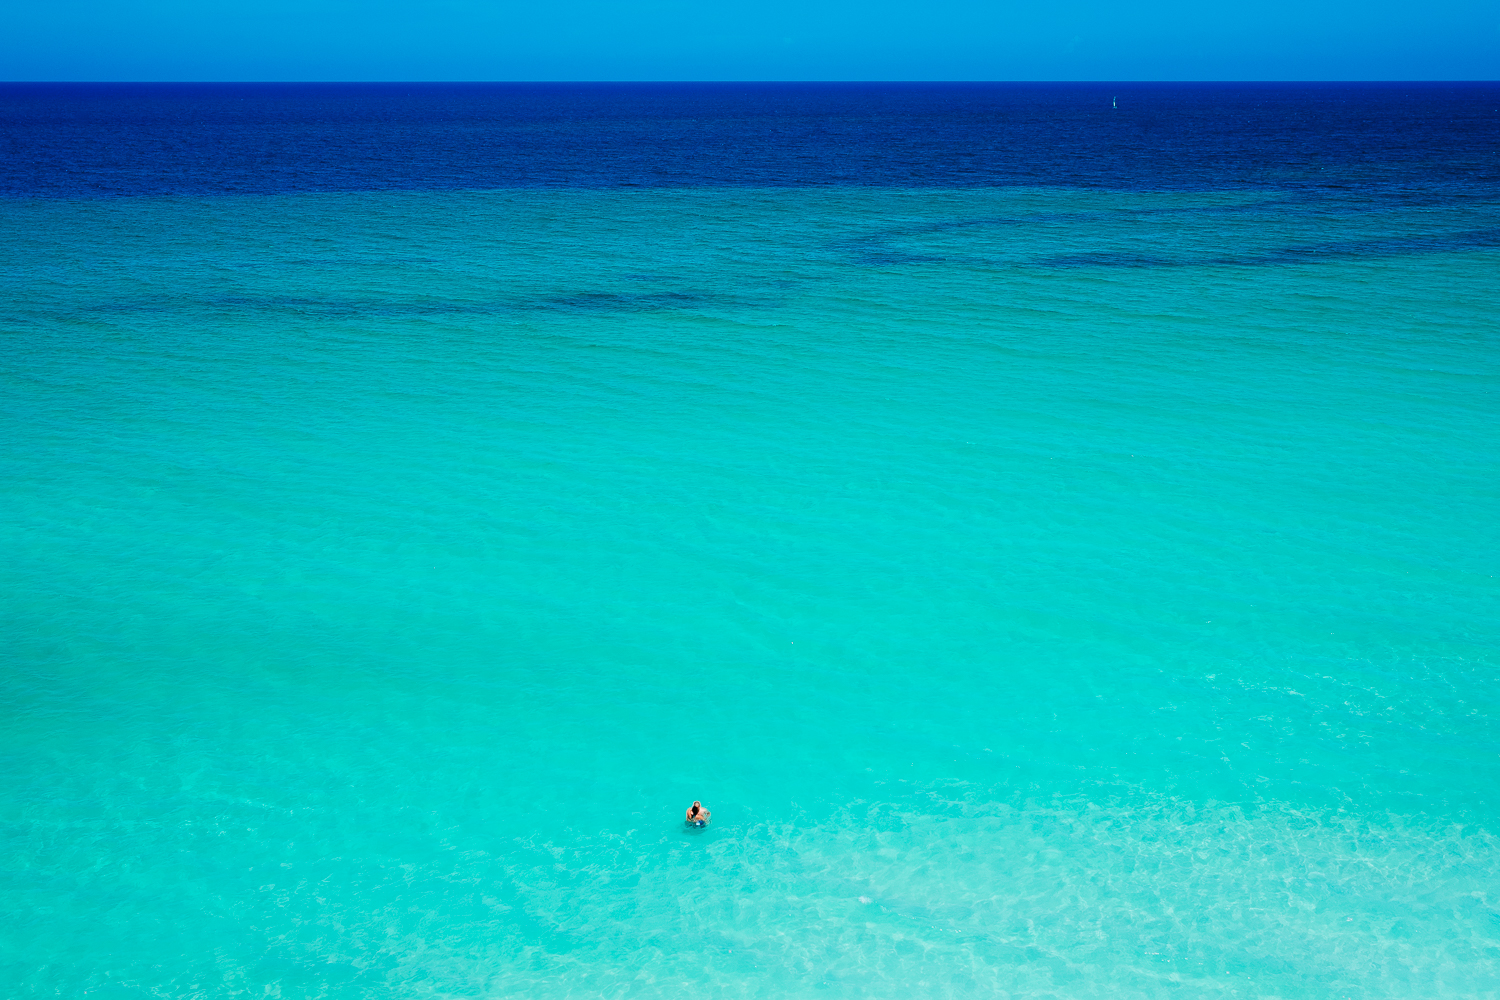 A couple all alone in the ocean in Varadero, Cuba 2015.